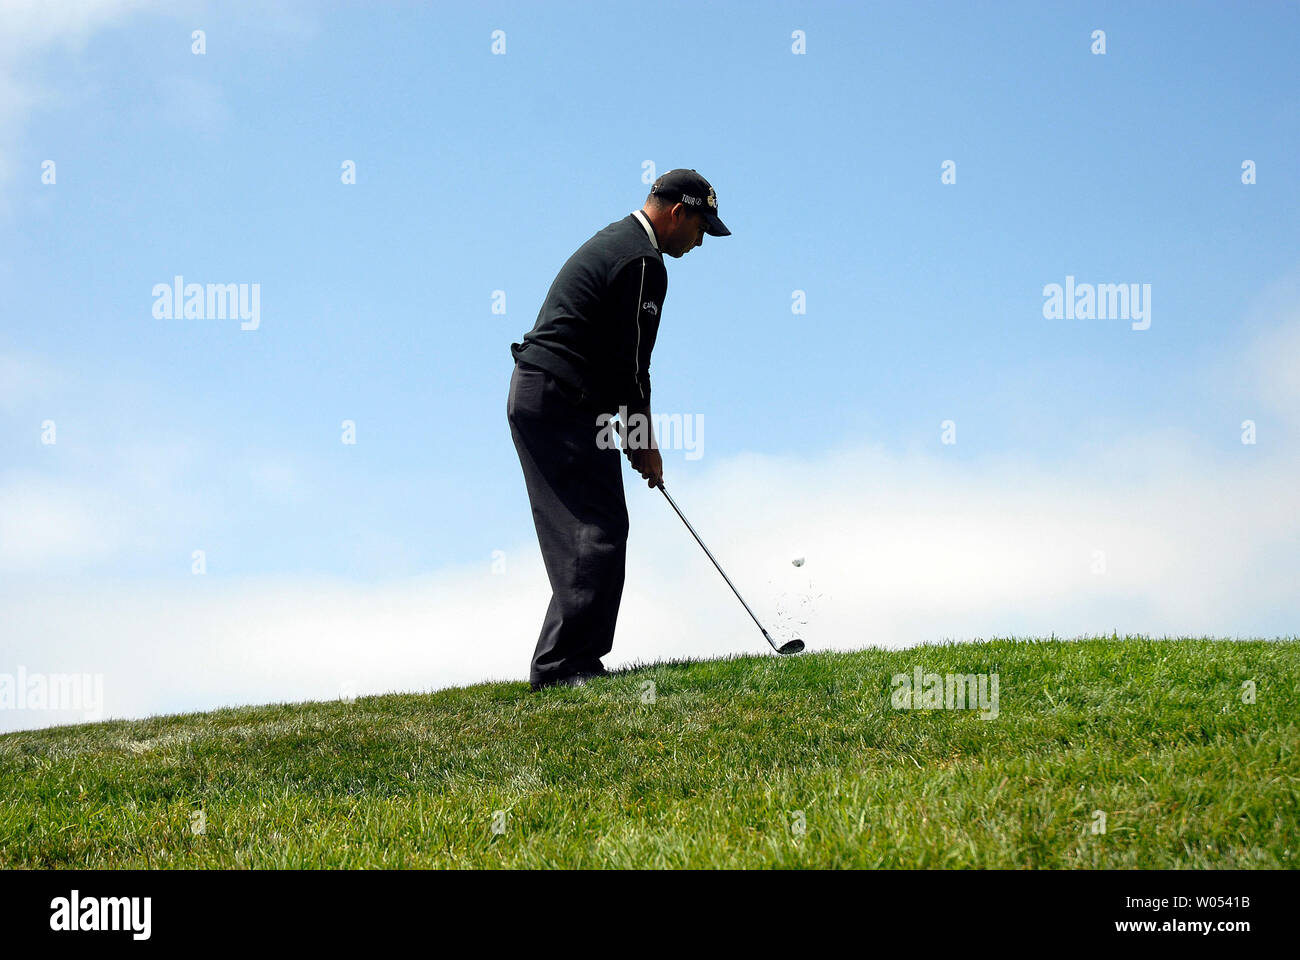 Rocco Mediate chips onto the 5th green during the last day of regular play of the US Open at Torrey Pines Golf Course in San Diego on June 15, 2008. Mediate tied for first with Tiger Woods and a playoff round will be held tomorrow. (UPI Photo/Earl S. Cryer) - Stock Image